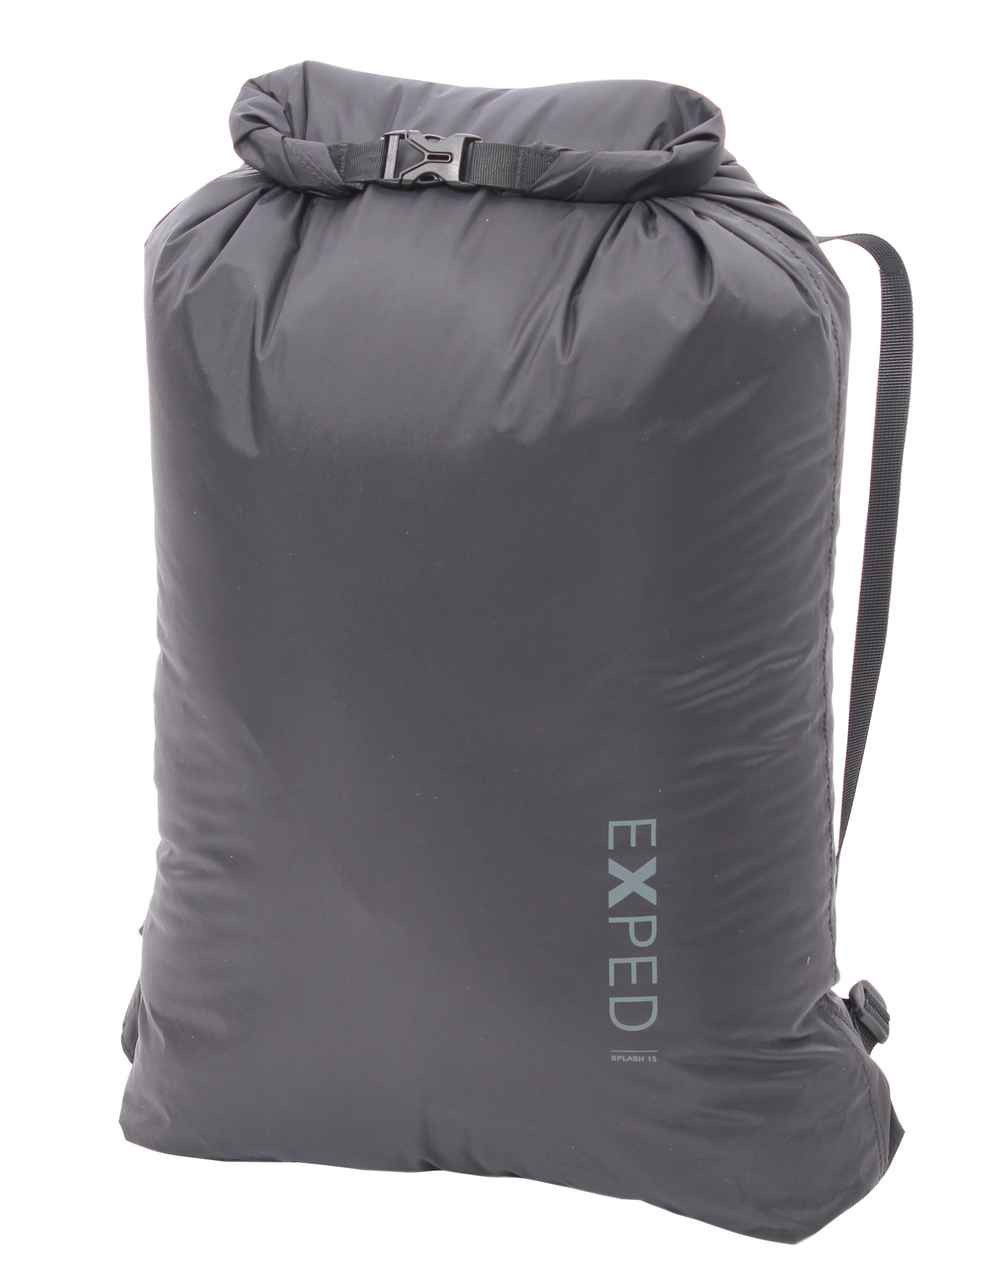 Exped Splash 15